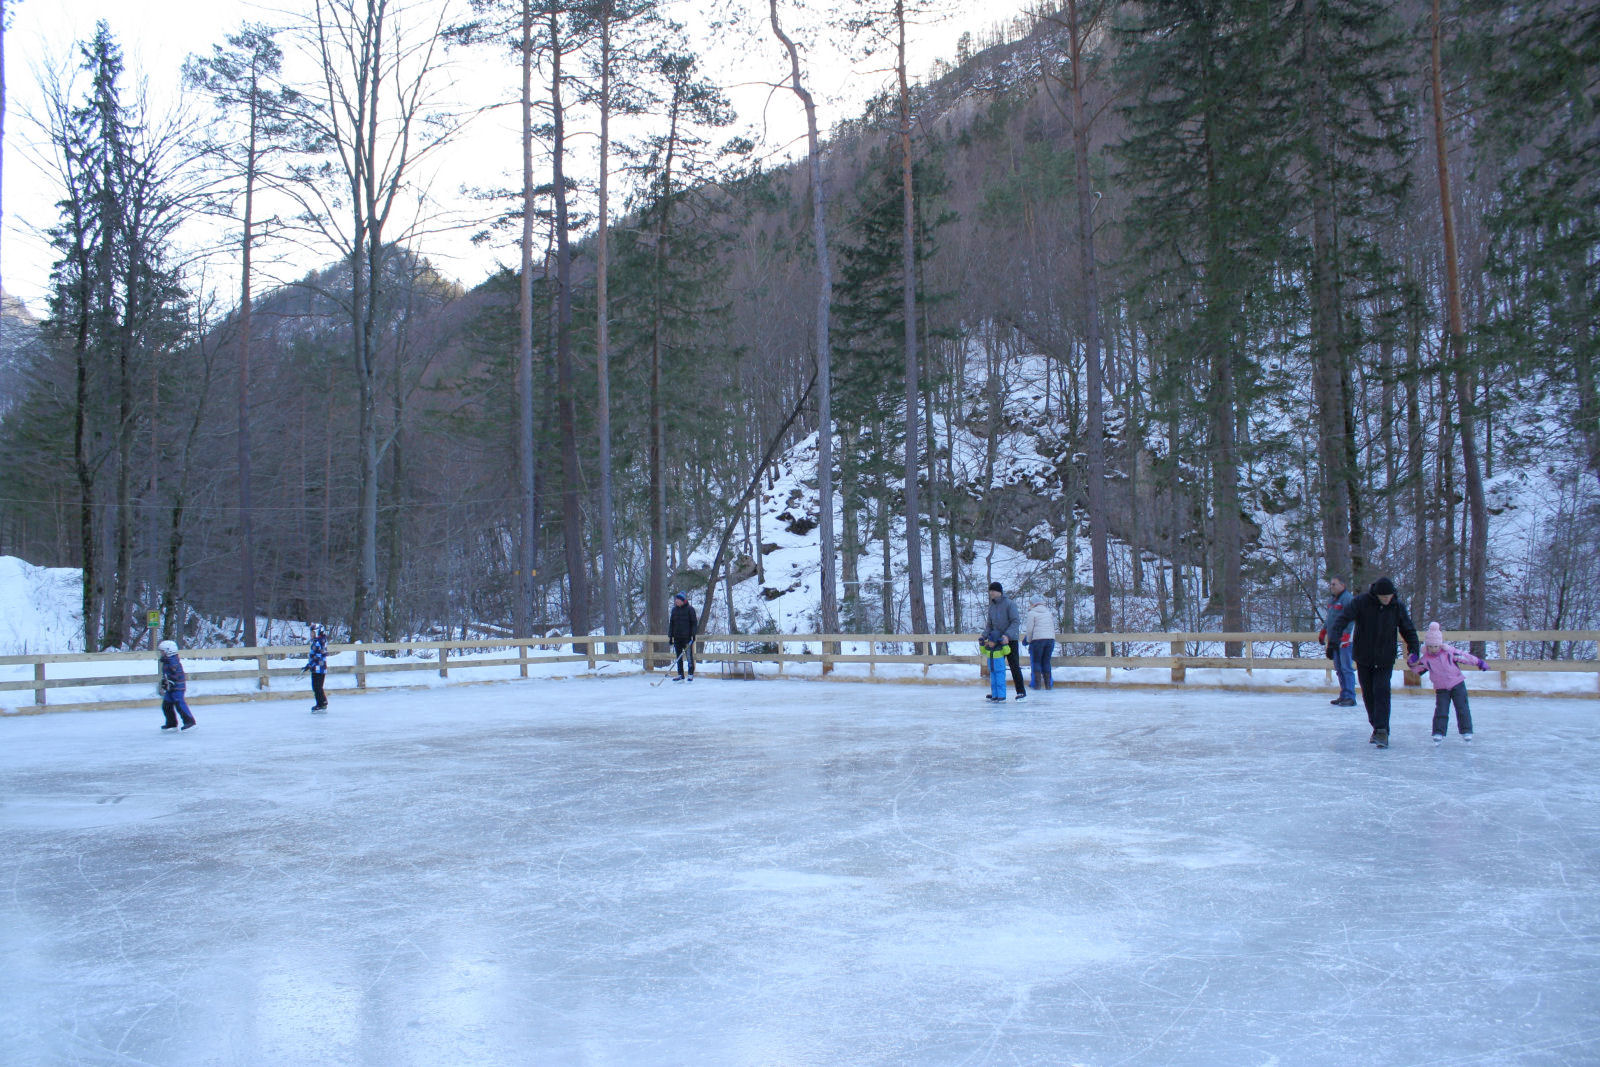 Ice skating near Bled, Slovenia